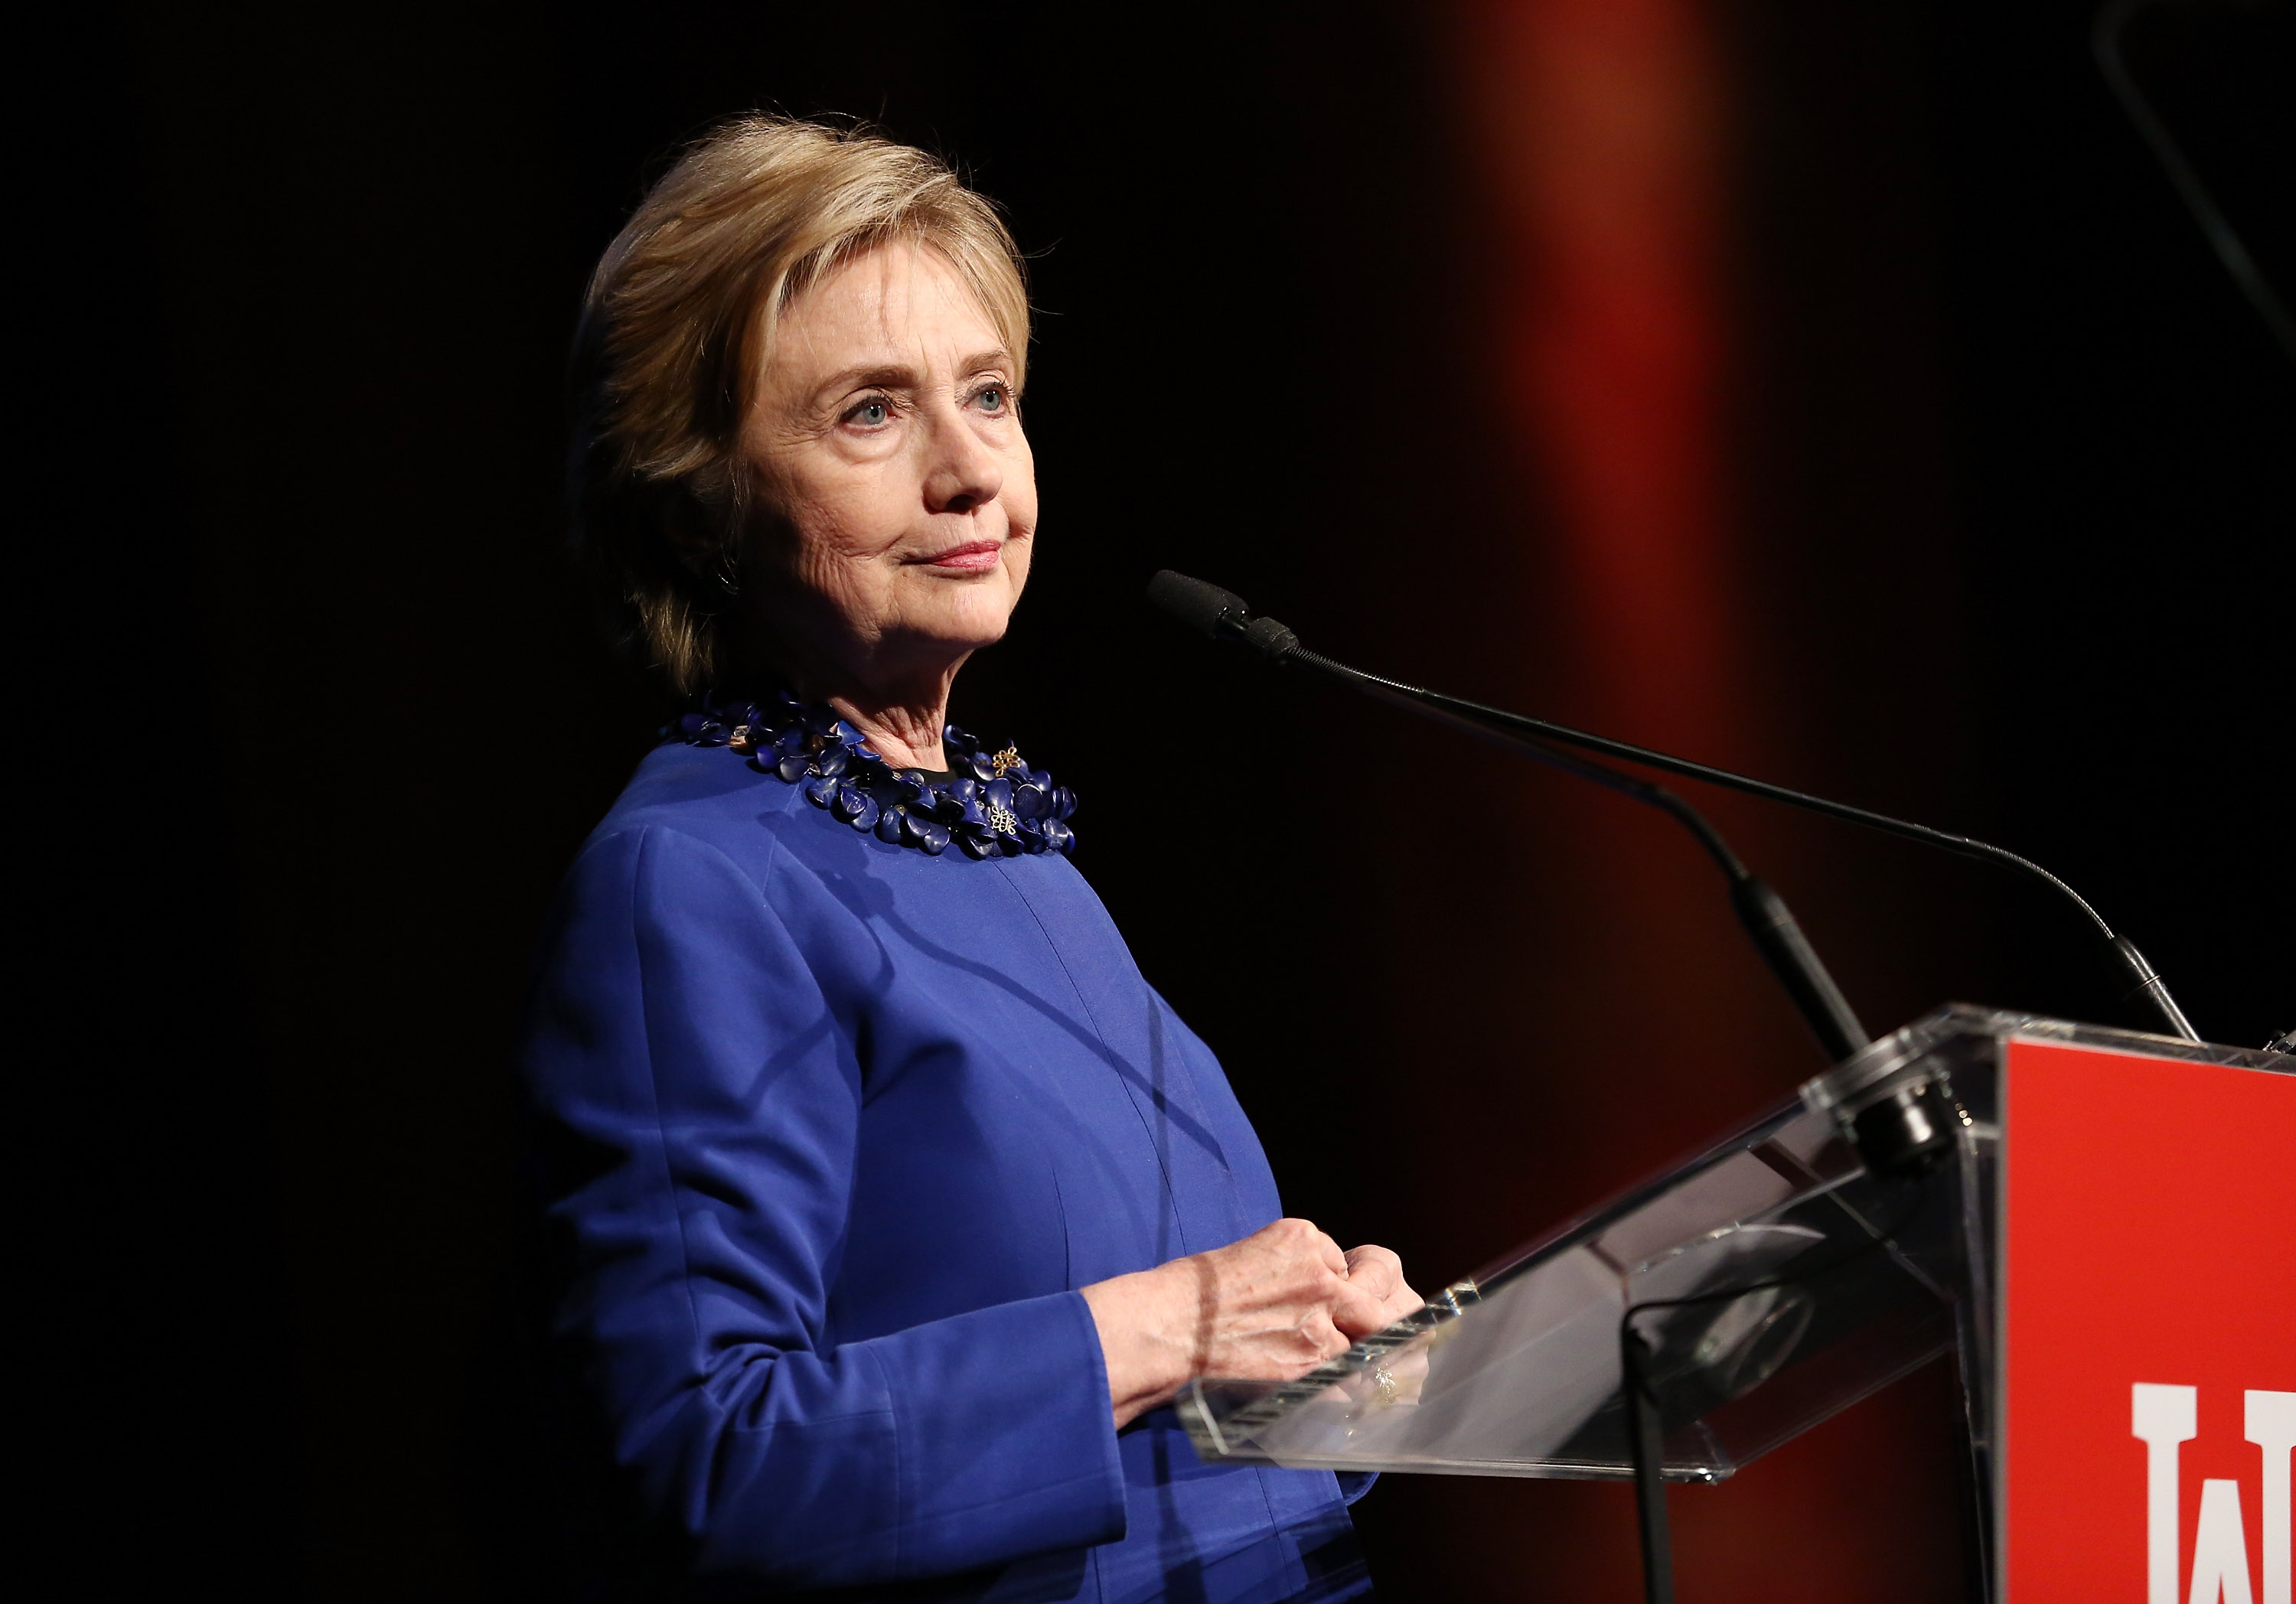 NEW YORK, NY - MAY 03:  Former US Secretary of State and WOV Honoree Hillary Clinton speaks onstage at the Ms. Foundation for Women 2017 Gloria Awards Gala & After Party at Capitale on May 3, 2017 in New York City.  (Photo by Monica Schipper/Getty Images for The Foundation for Women)